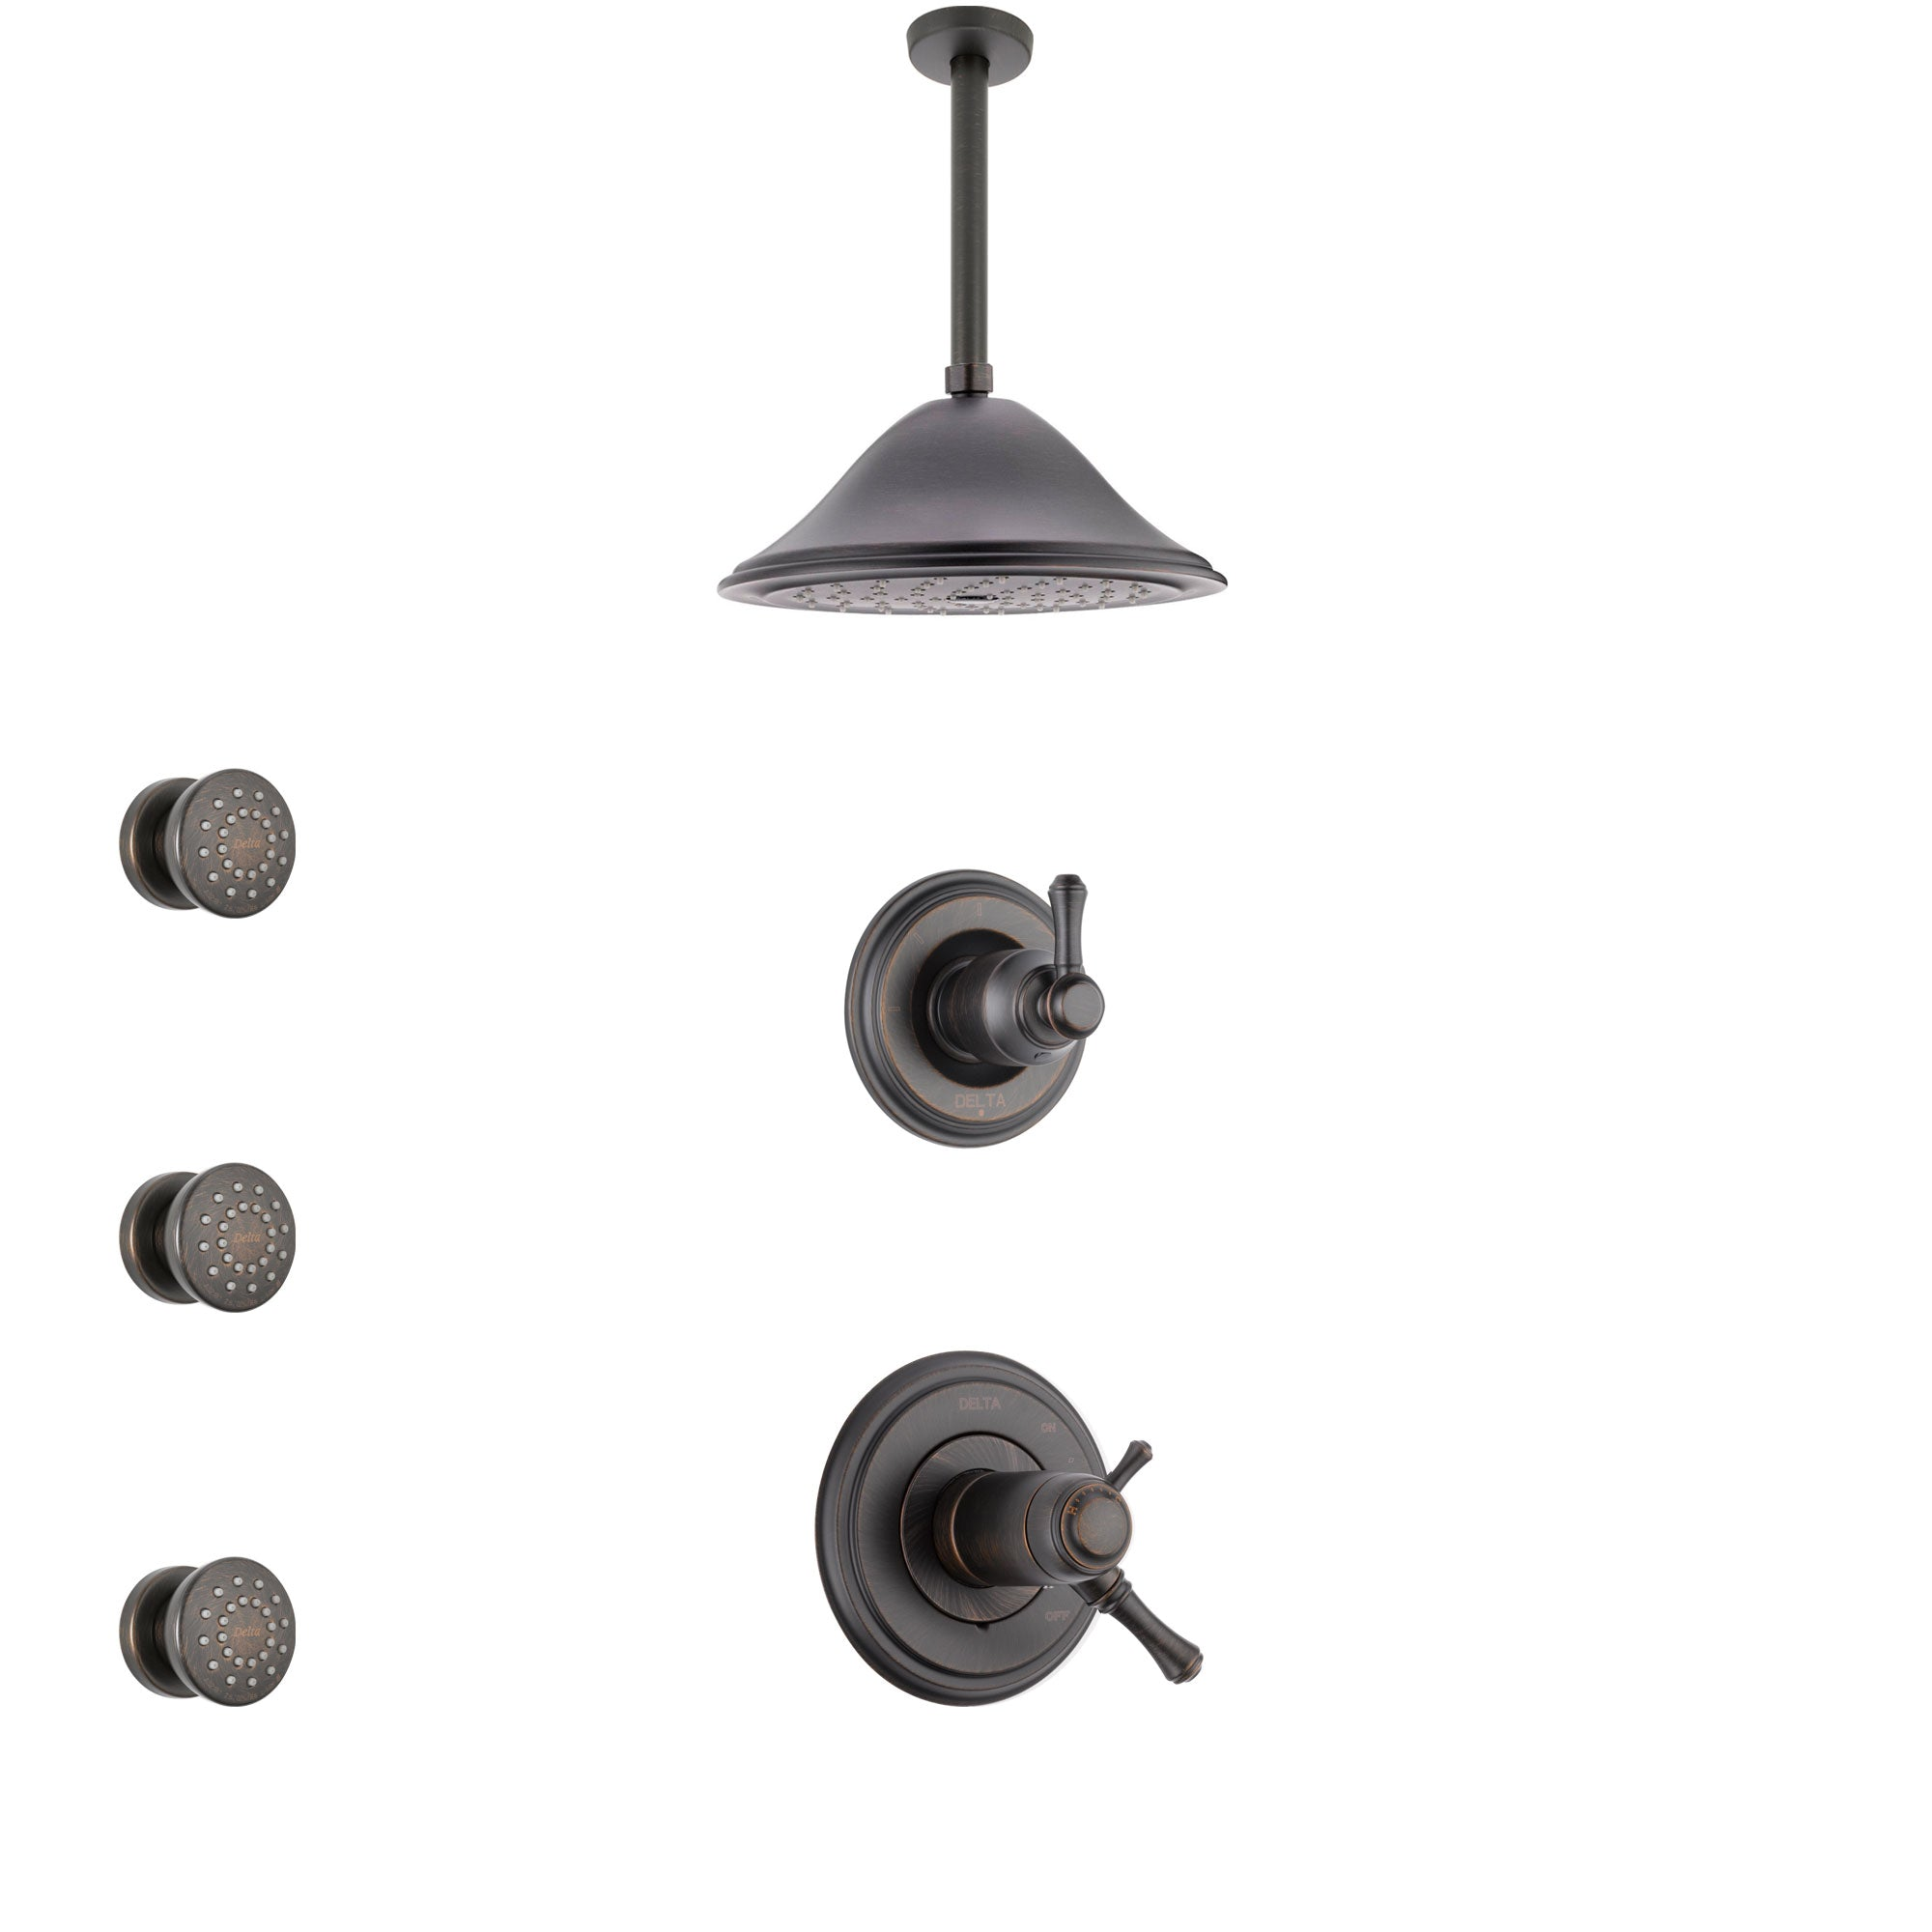 Delta Cassidy Venetian Bronze Shower System with Dual Thermostatic Control Handle, Diverter, Ceiling Mount Showerhead, and 3 Body Sprays SS17T972RB2